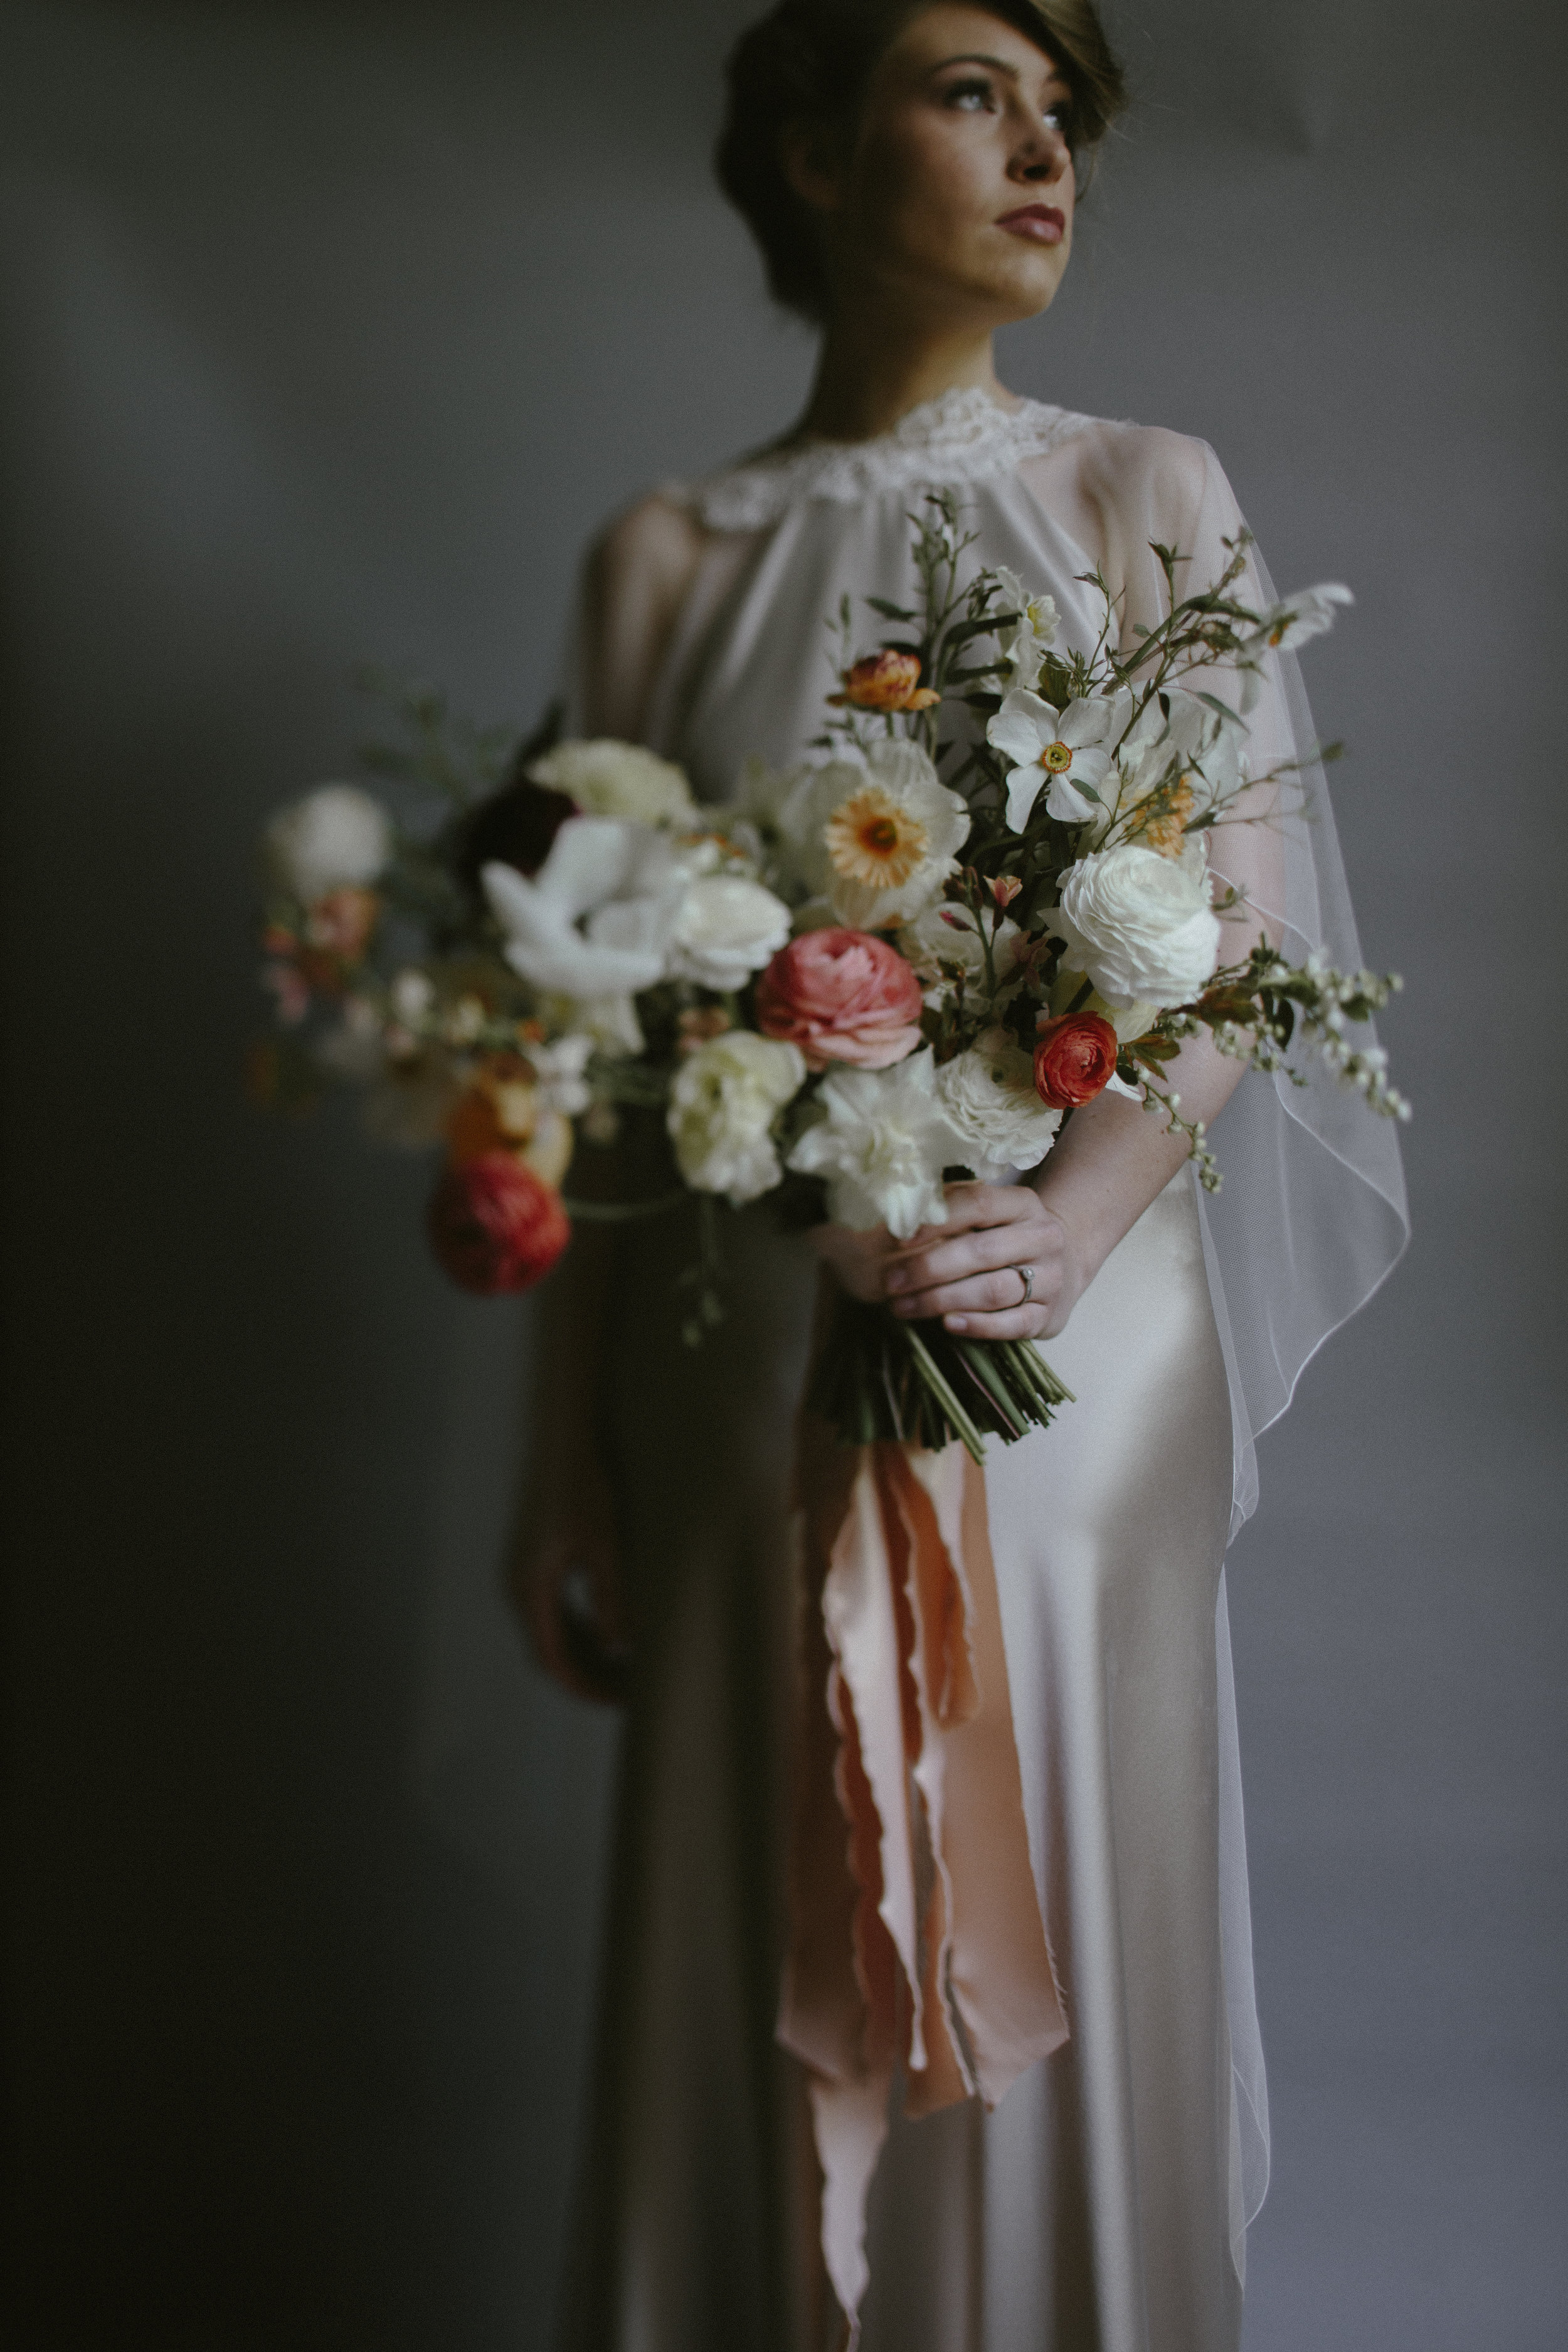 Agnes-and-bee-Kate-Beaumont-wedding-dresses-Ruth-Atkinson-2.jpg